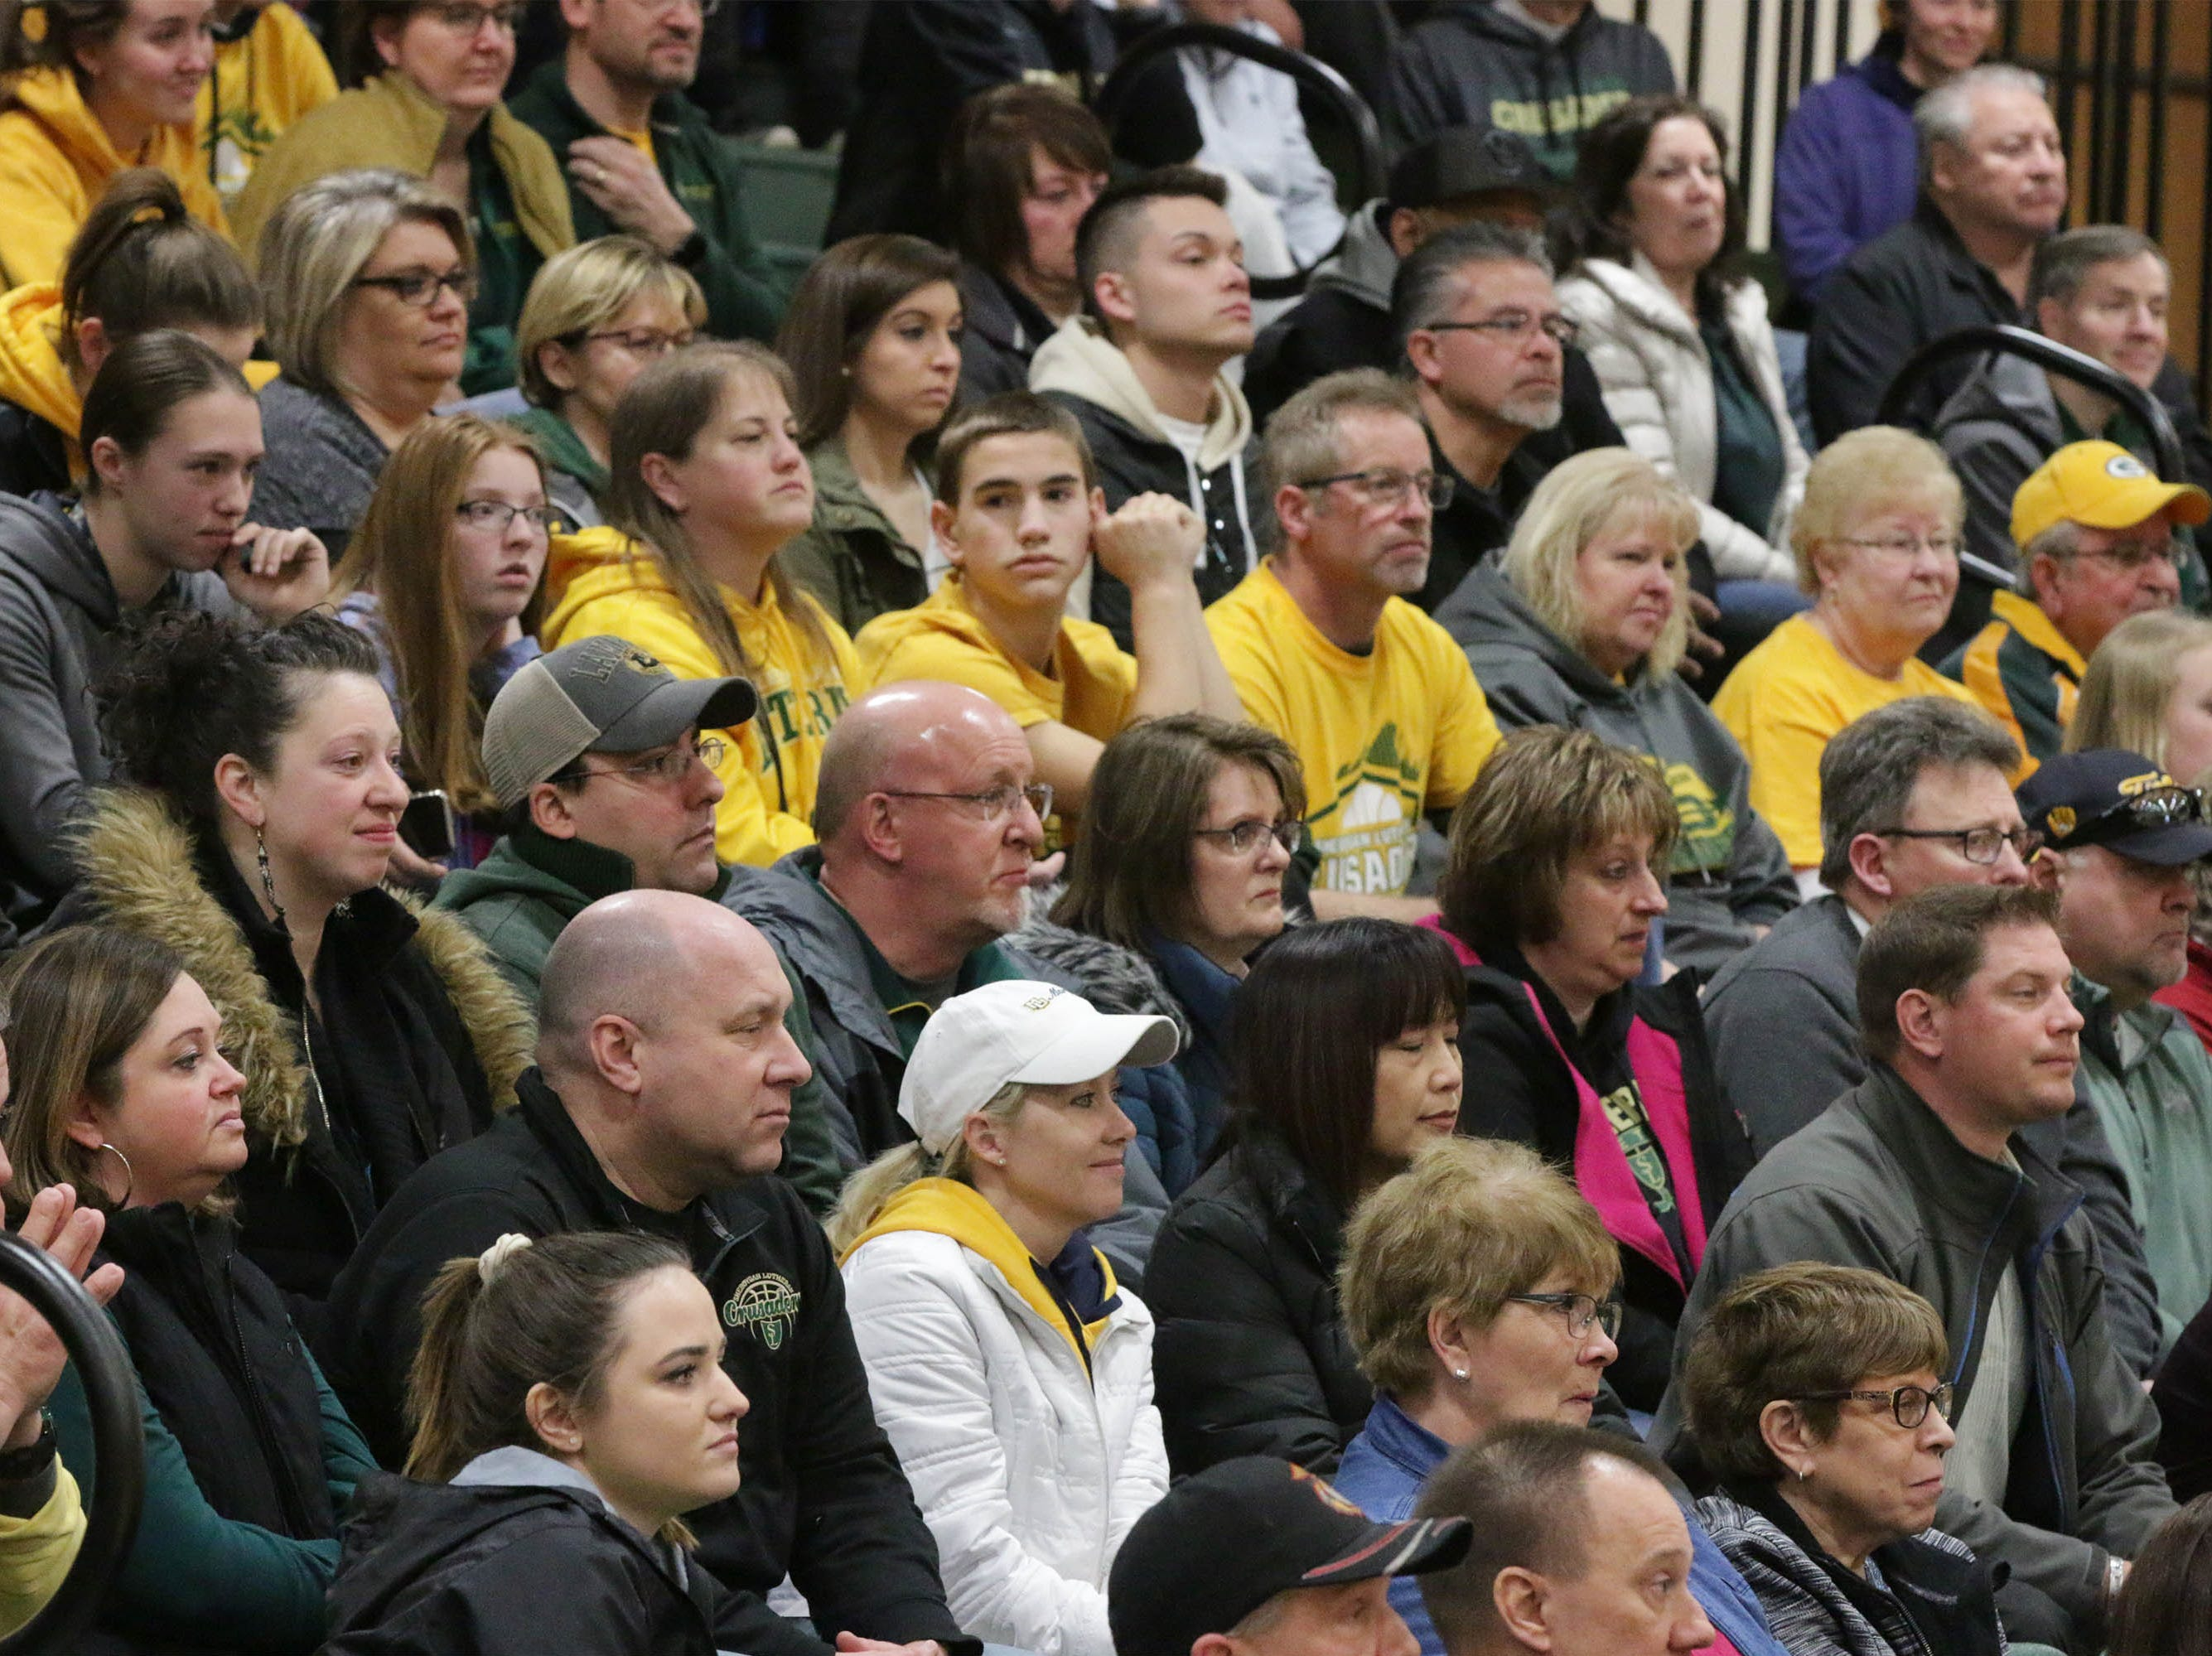 The bleachers were packed with Sheboygan Lutheran fans at a special rally honoring their WIAA Div. 5 State Championship, Sunday, March 17, 2019, in Sheboygan, Wis.